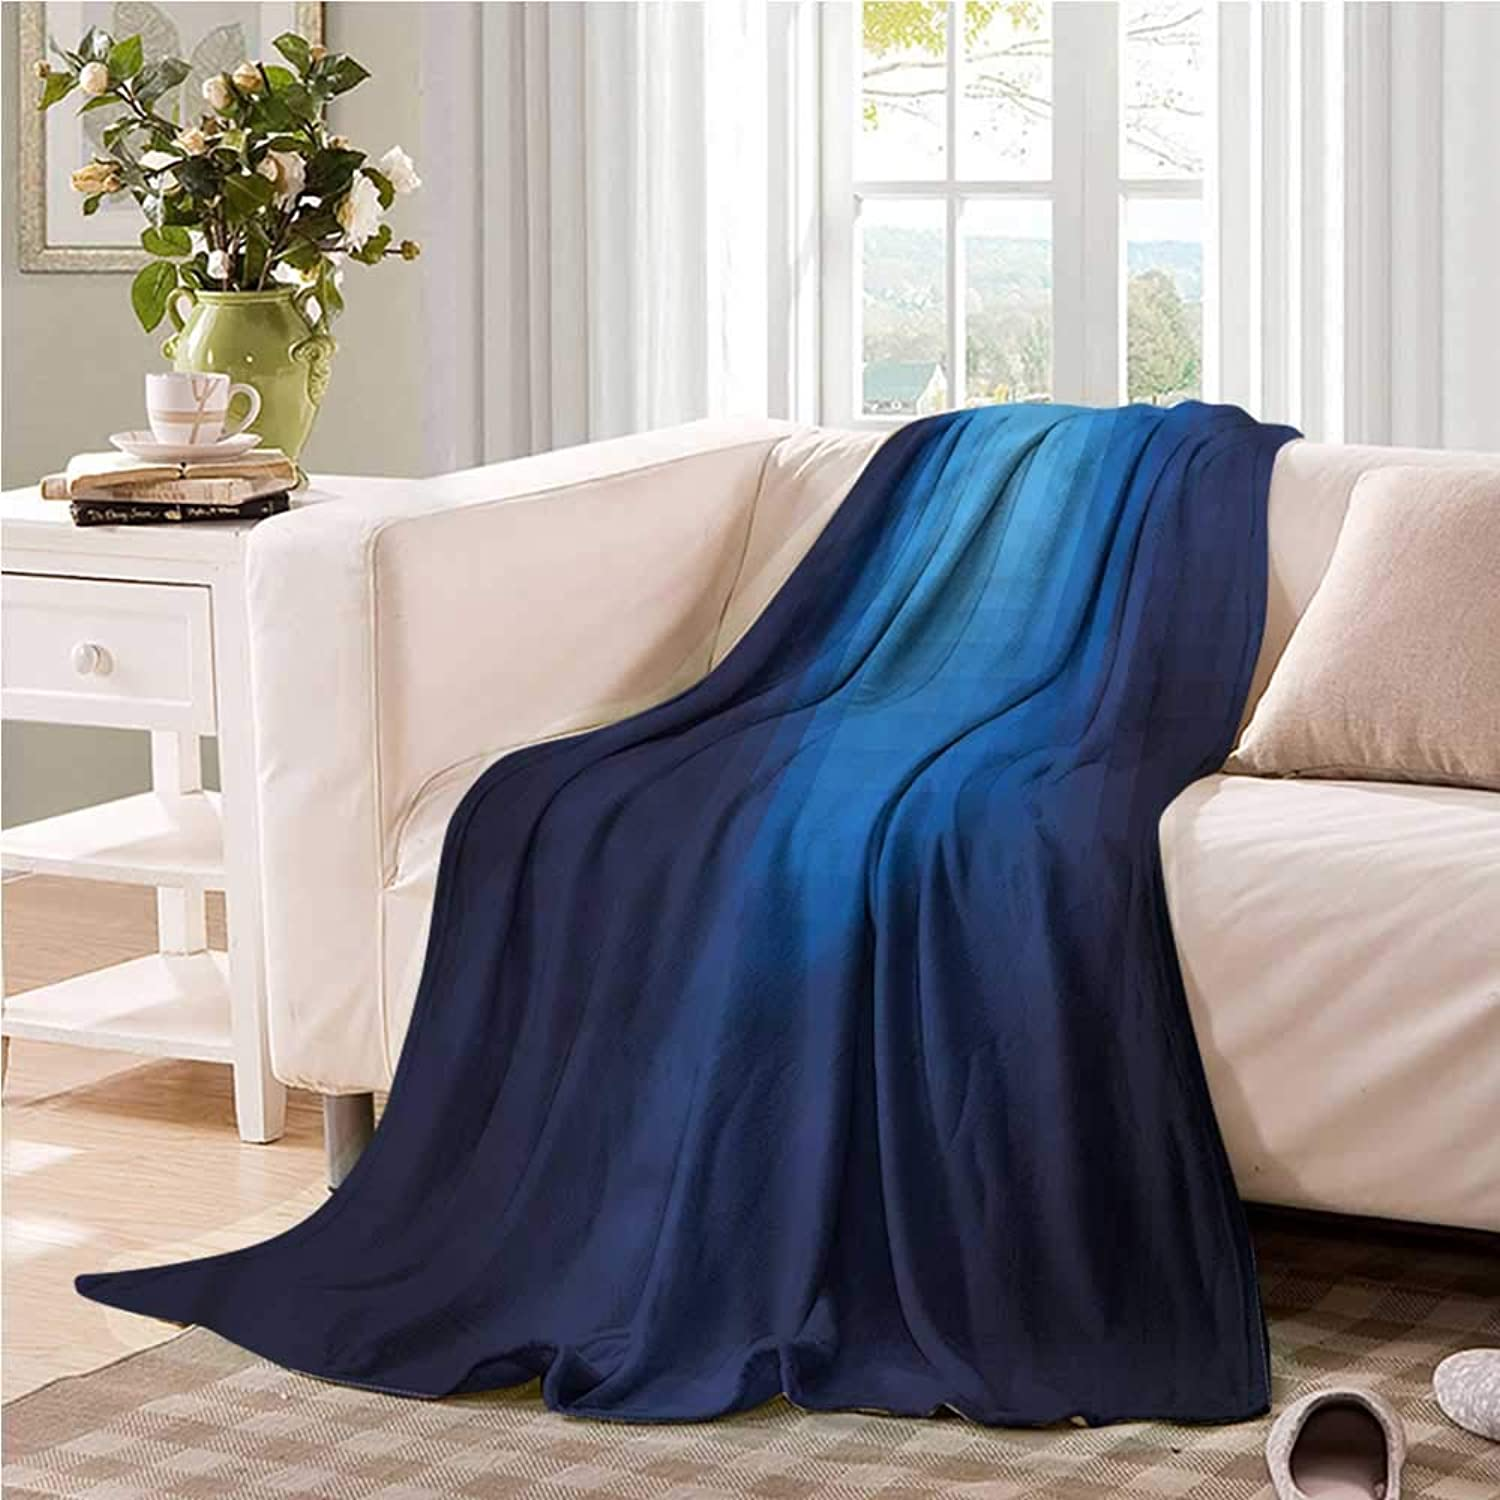 Oncegod Super Soft Blanket Navy bluerry Mosaic Pixel Square Camping Throw,Office wrap 60  W x 51  L